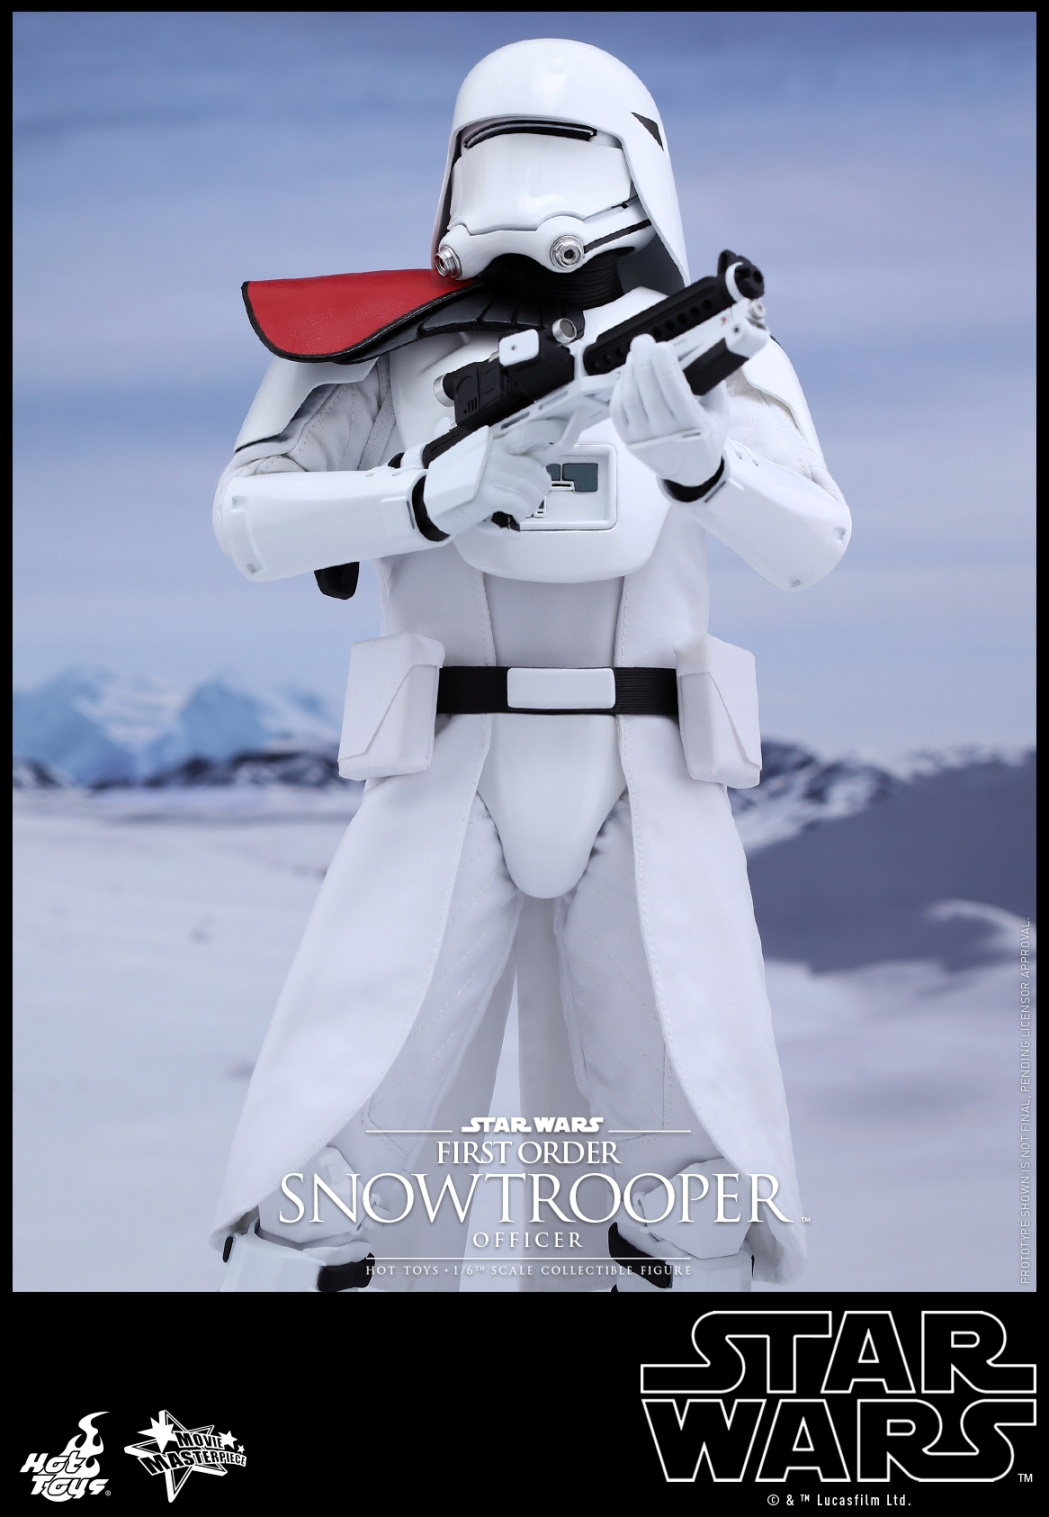 Hot Toys - Star Wars - The Force Awakens - The First Order Snowtrooper Officer Collectible Figure_PR3